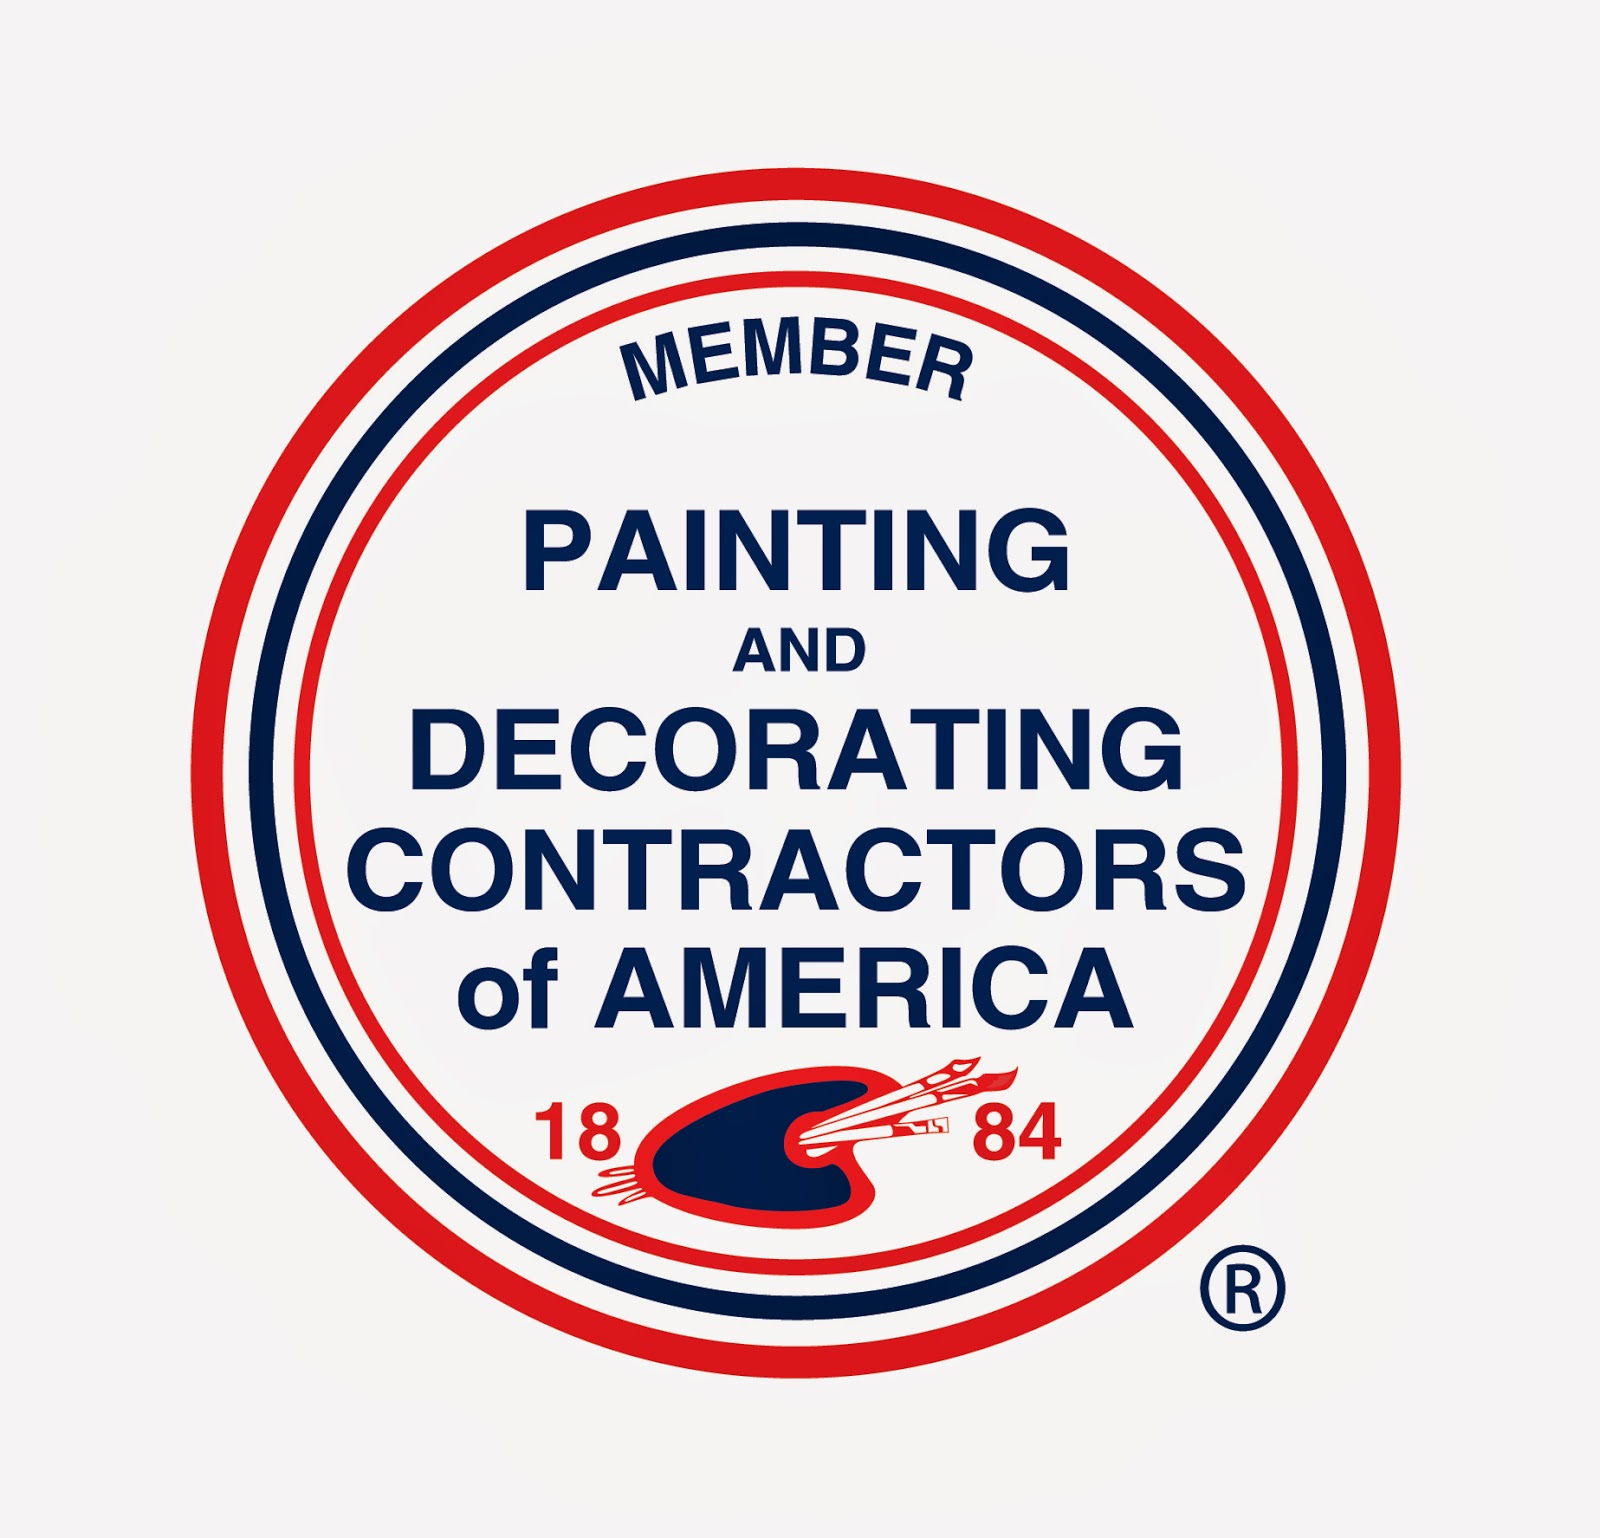 Kellogg's Painting, Leeds, NY 12451 Painting and Decorating Contractors of America